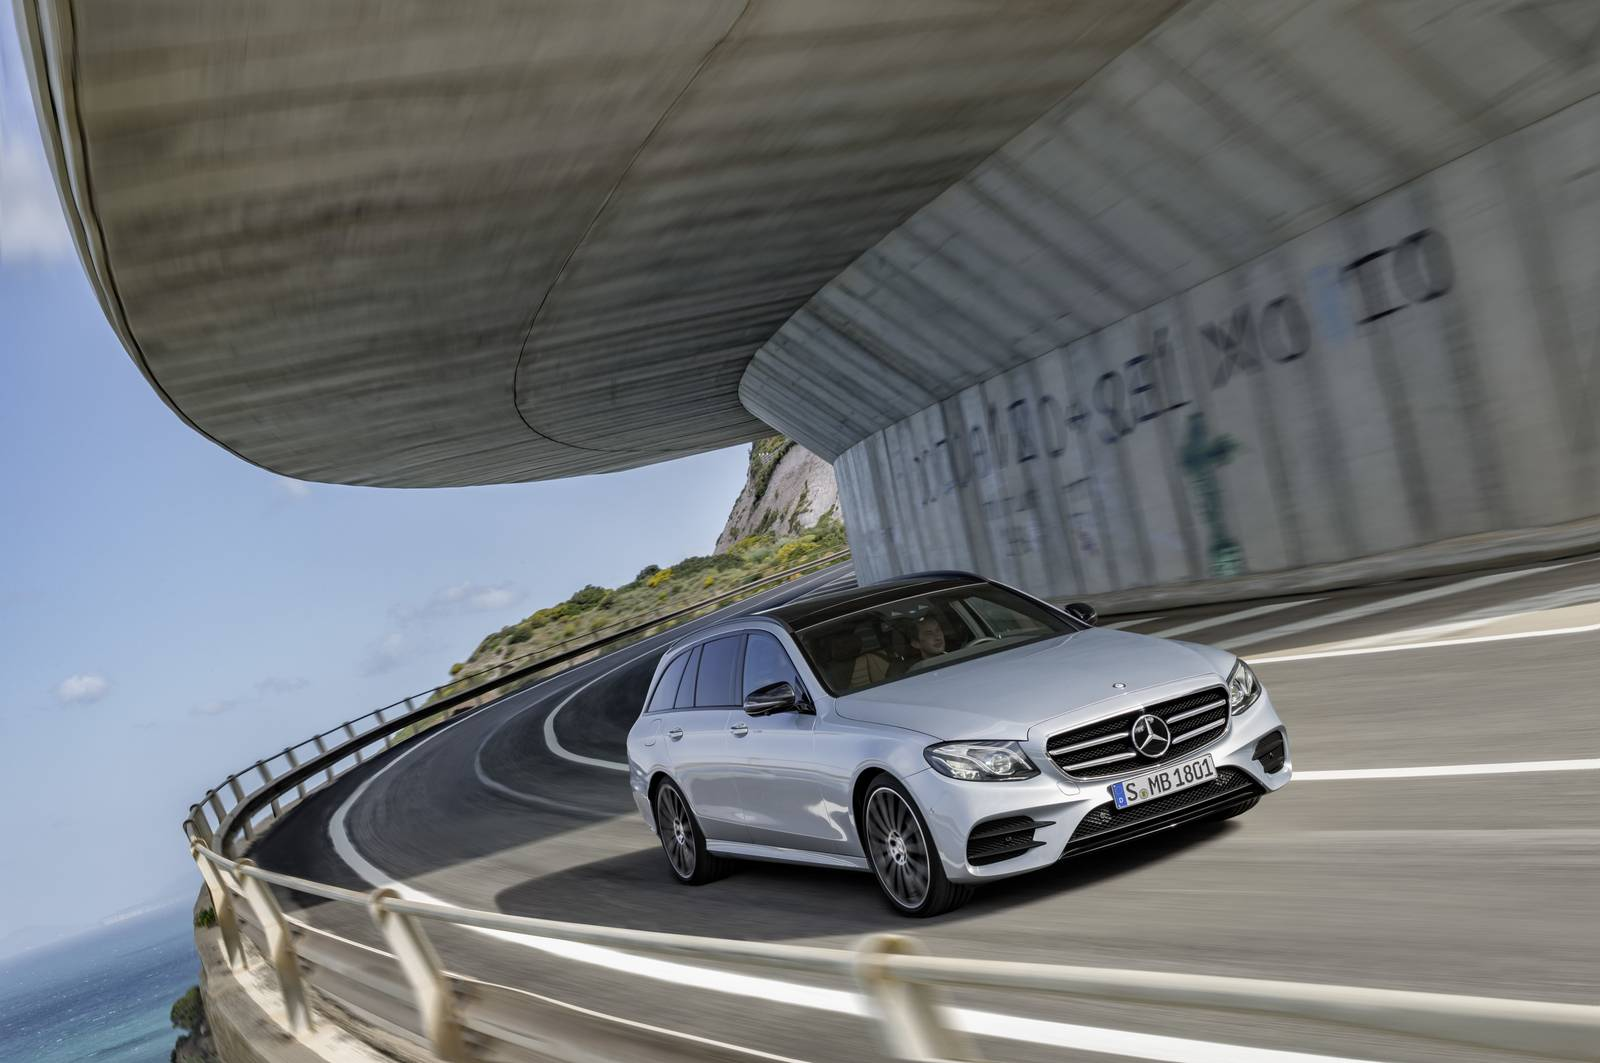 2019 Mercedes Benz E Class Estate UK Version photo - 2